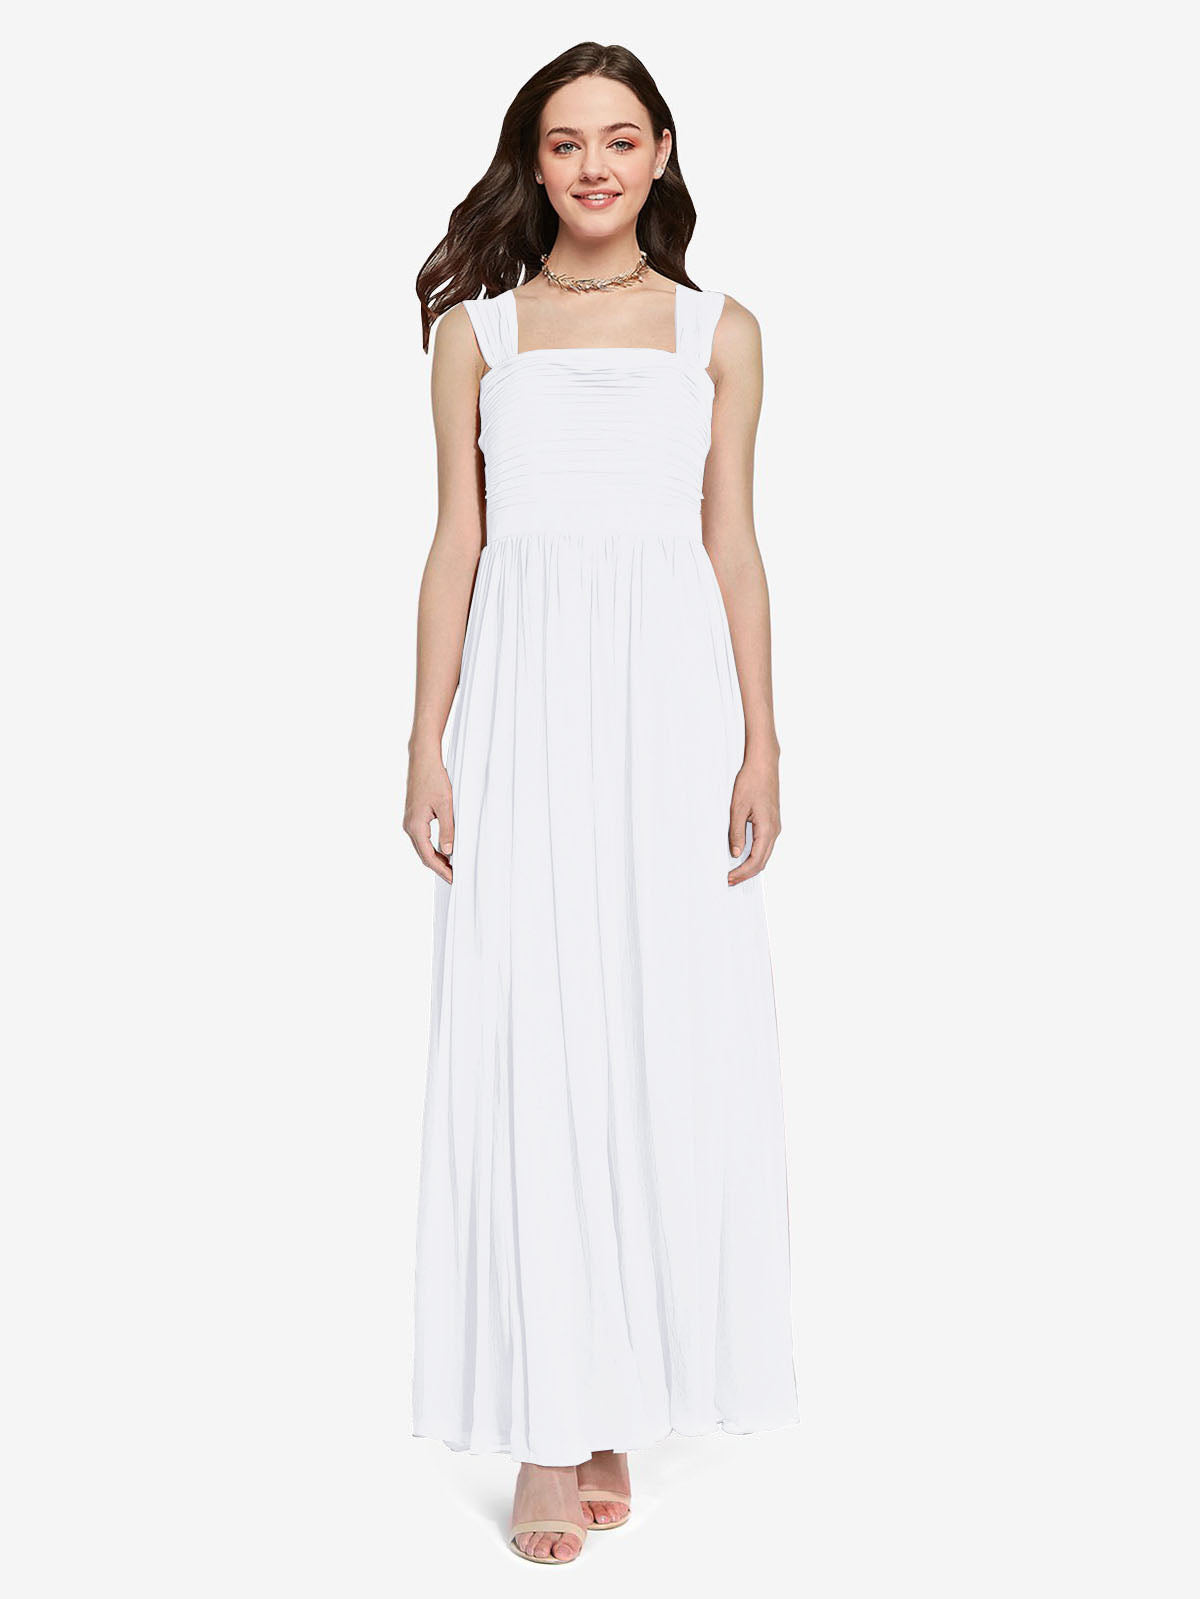 Long A-Line Square Sleeveless White Chiffon Bridesmaid Dress Aldridge